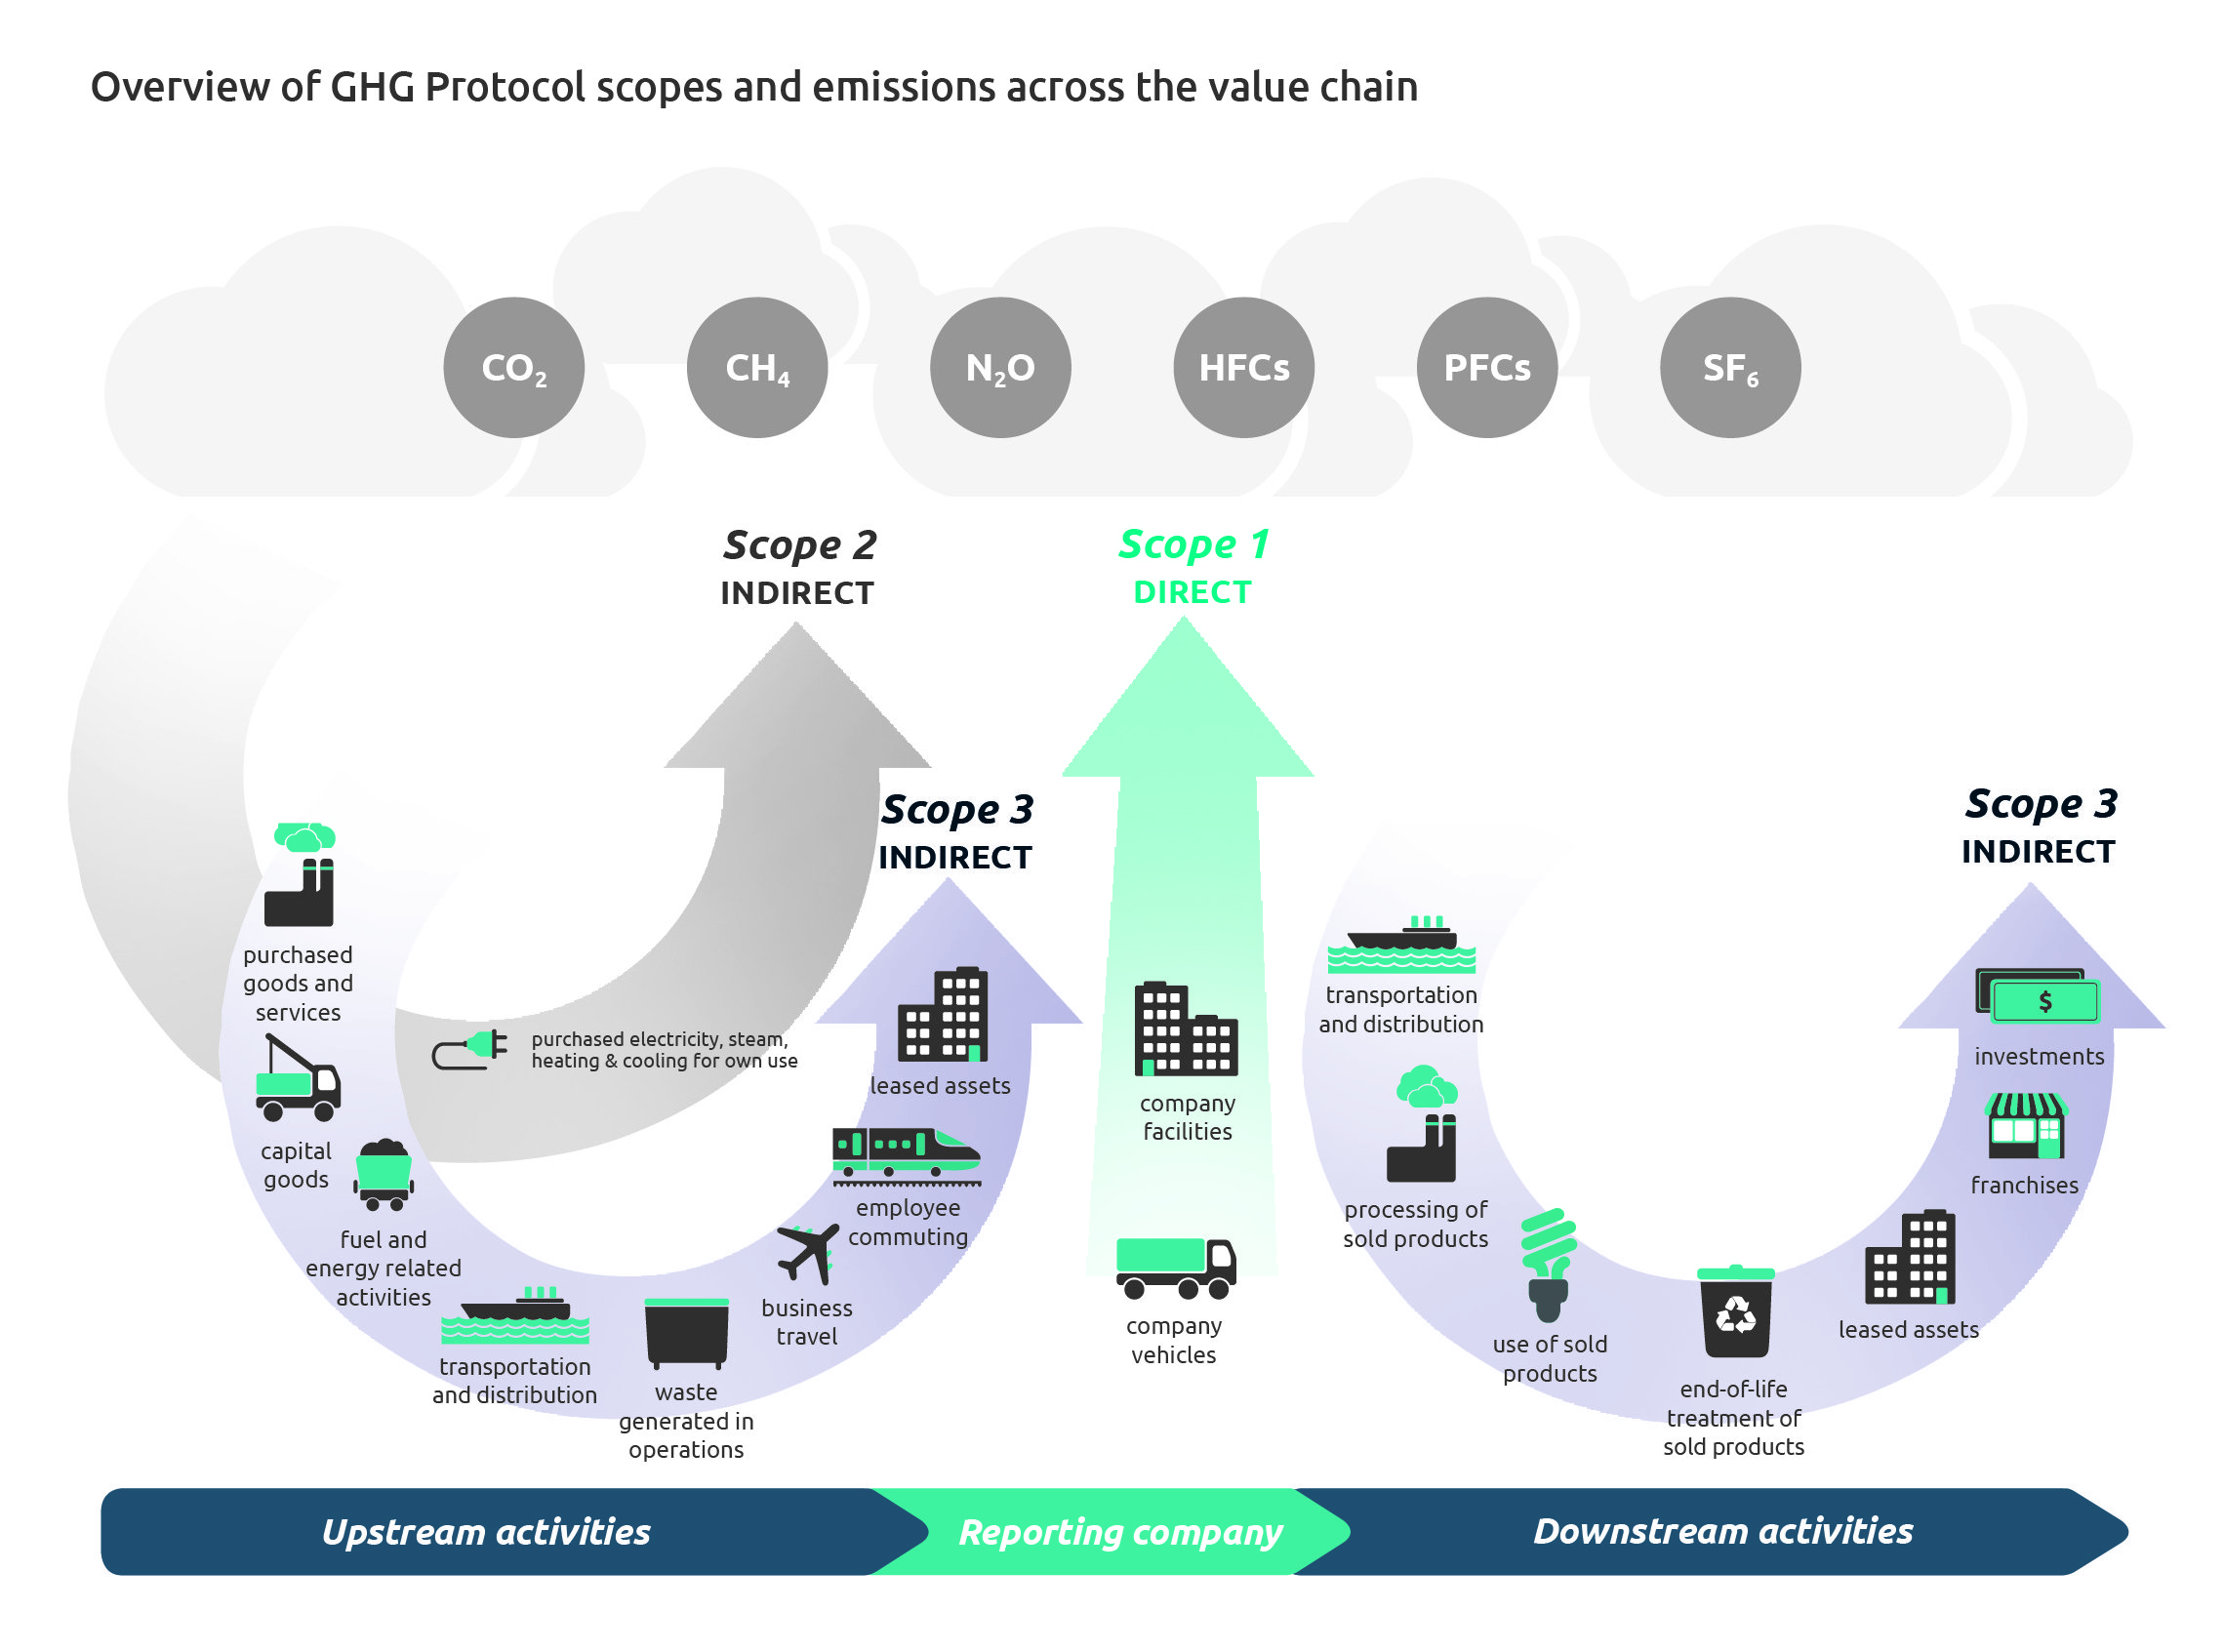 Scopes and emissions across the value chain diagram